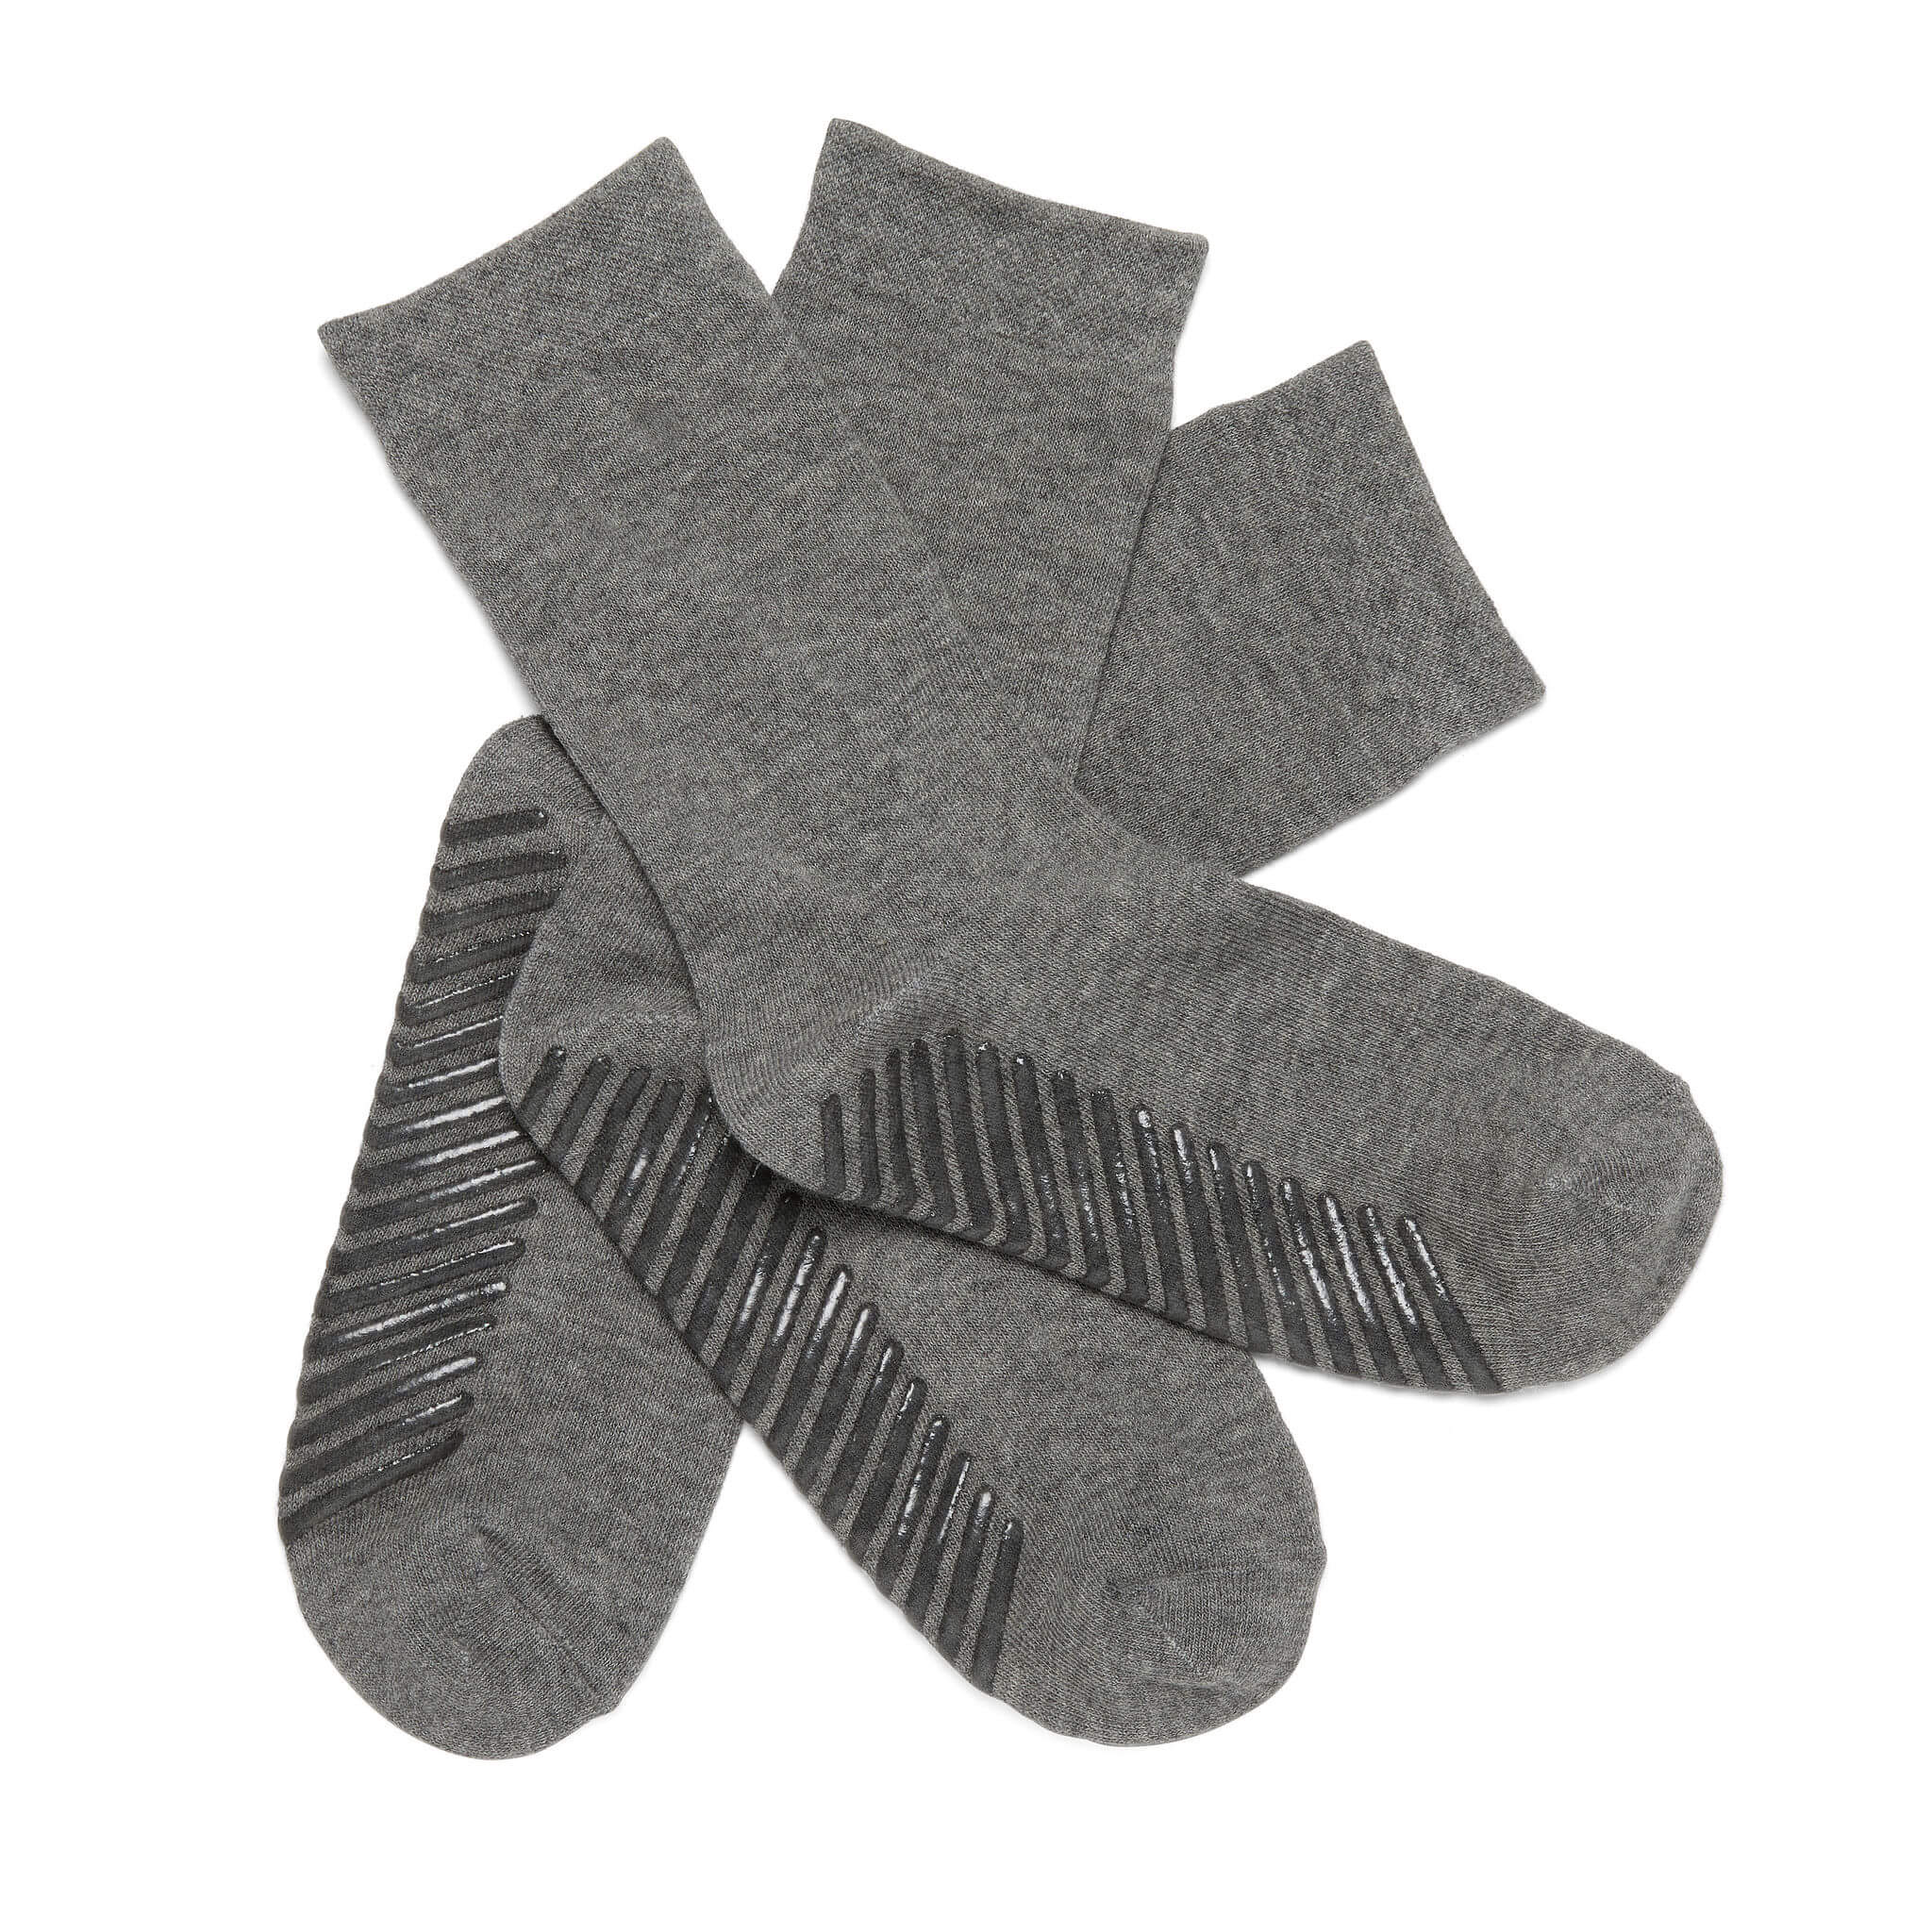 Gripjoy Crew Grip Socks Light Grey - 3 Pairs - Gripjoy Socks